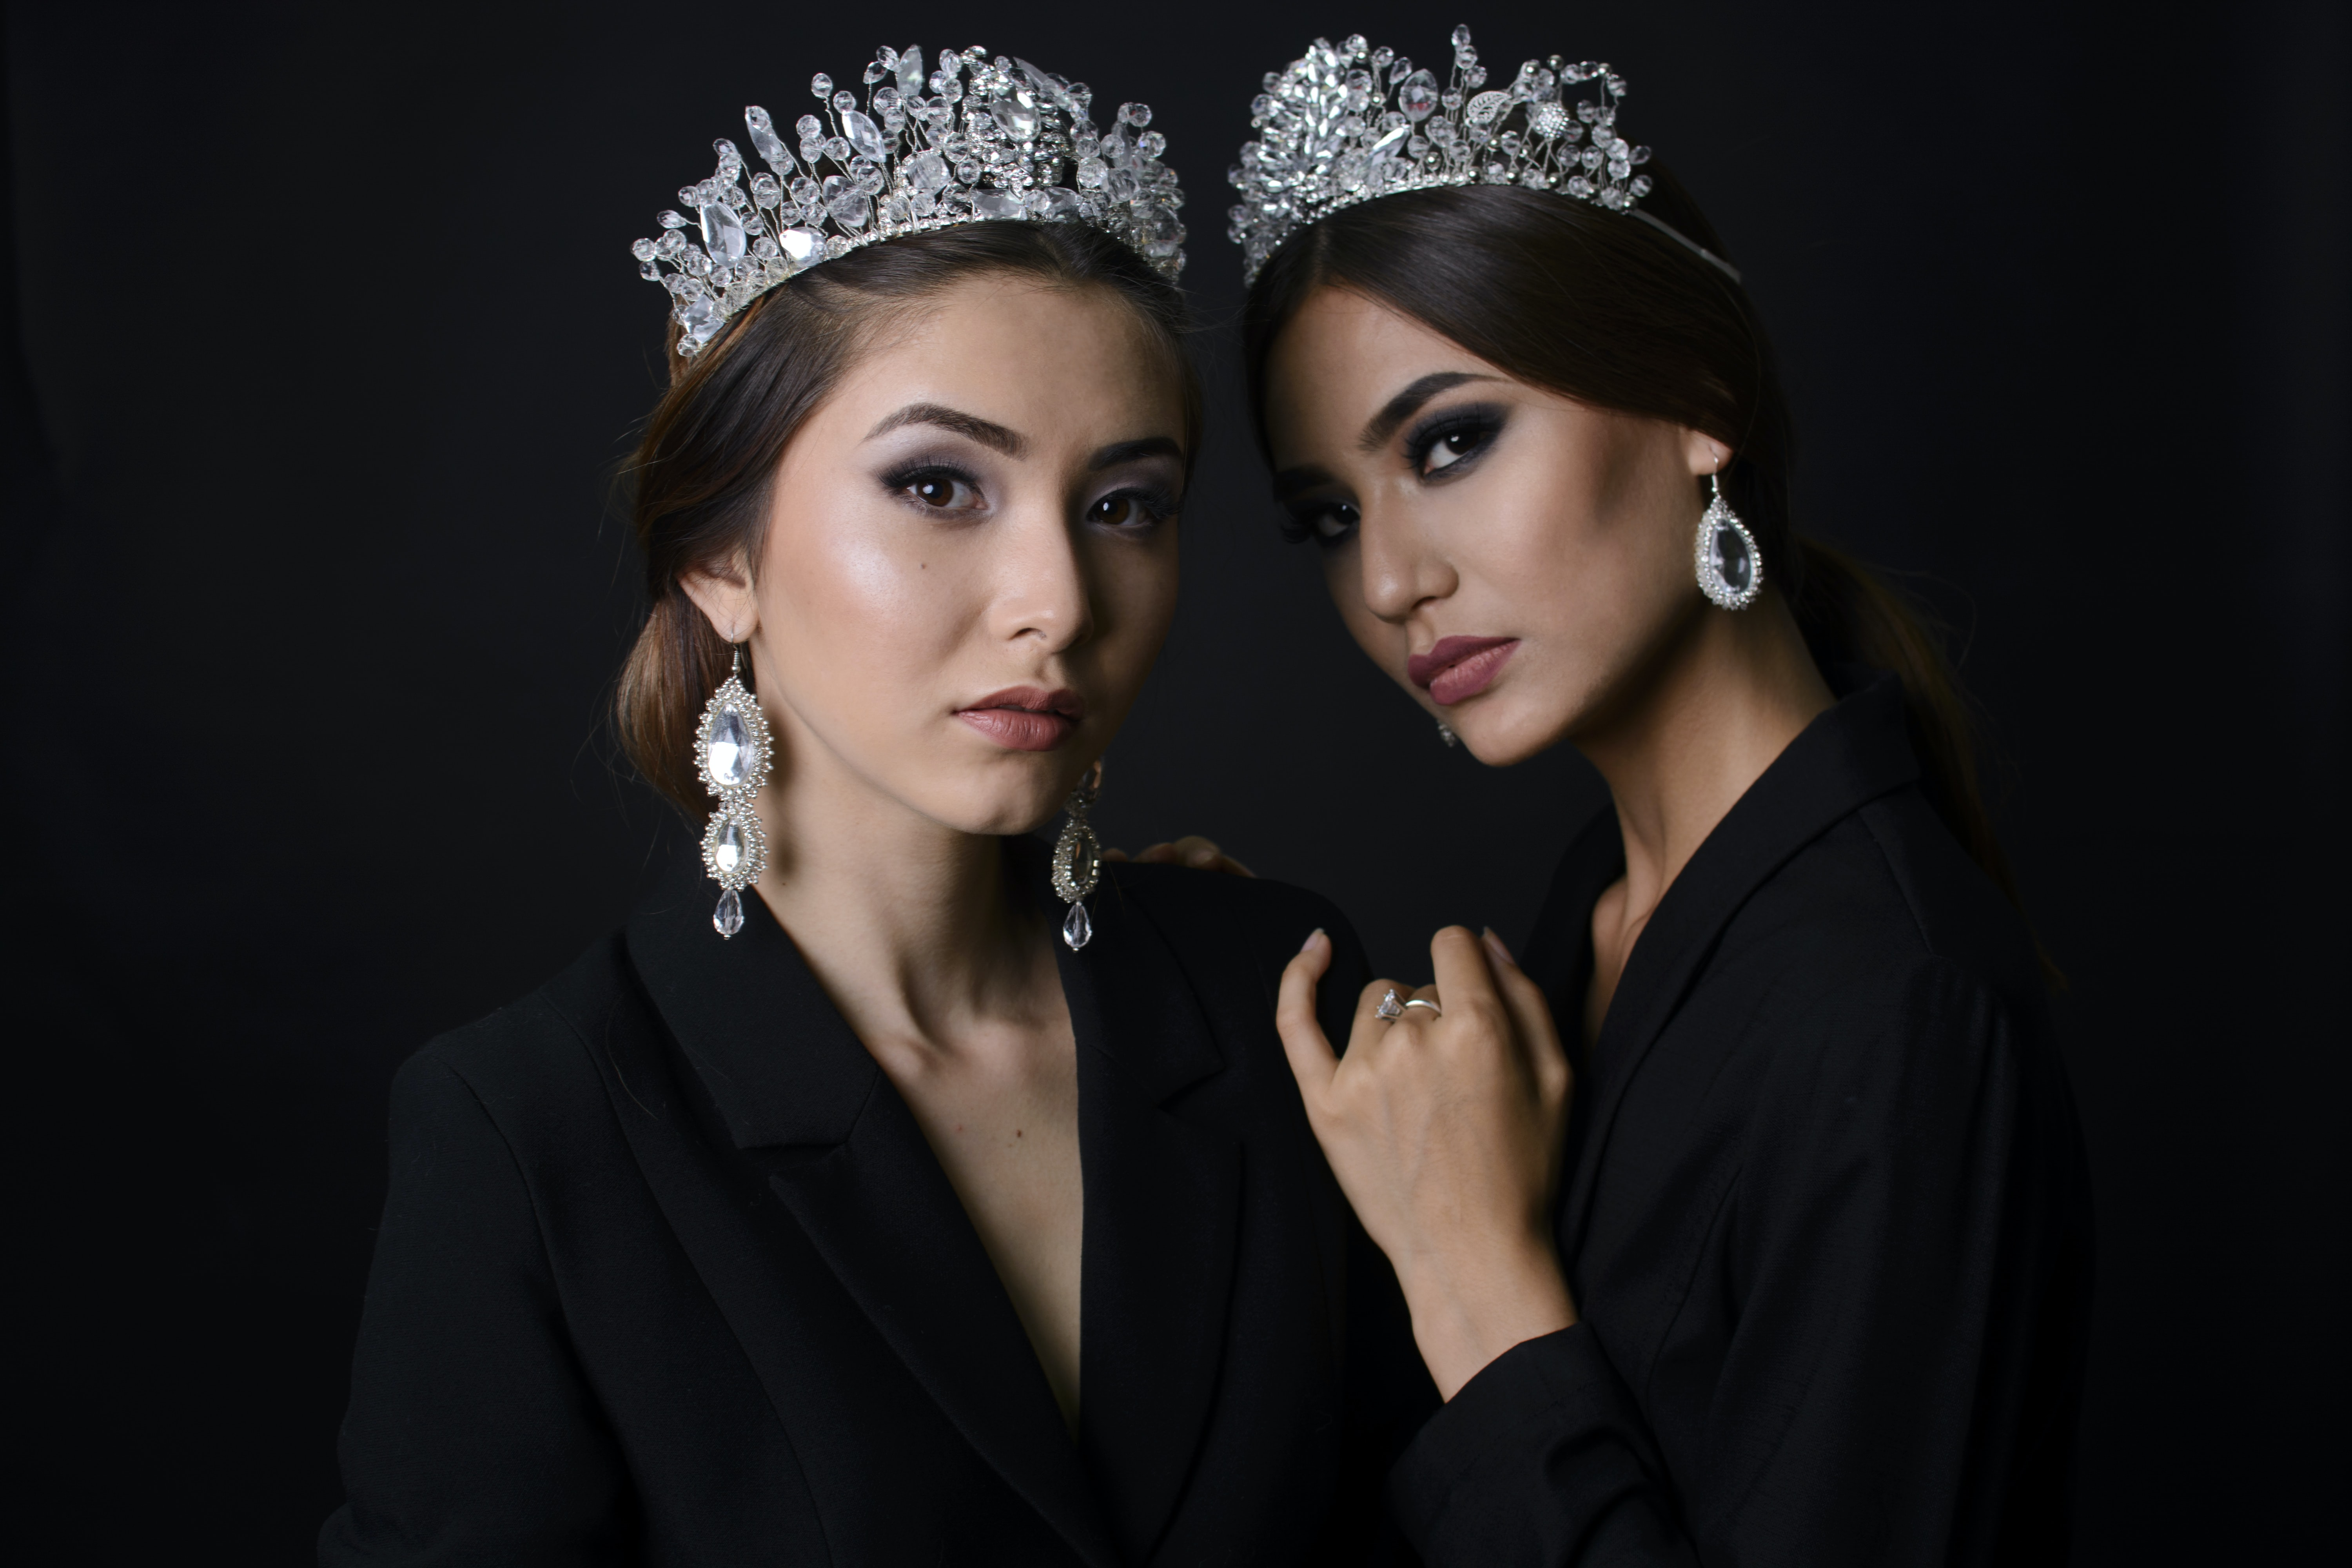 two woman wearing silver-color crowns